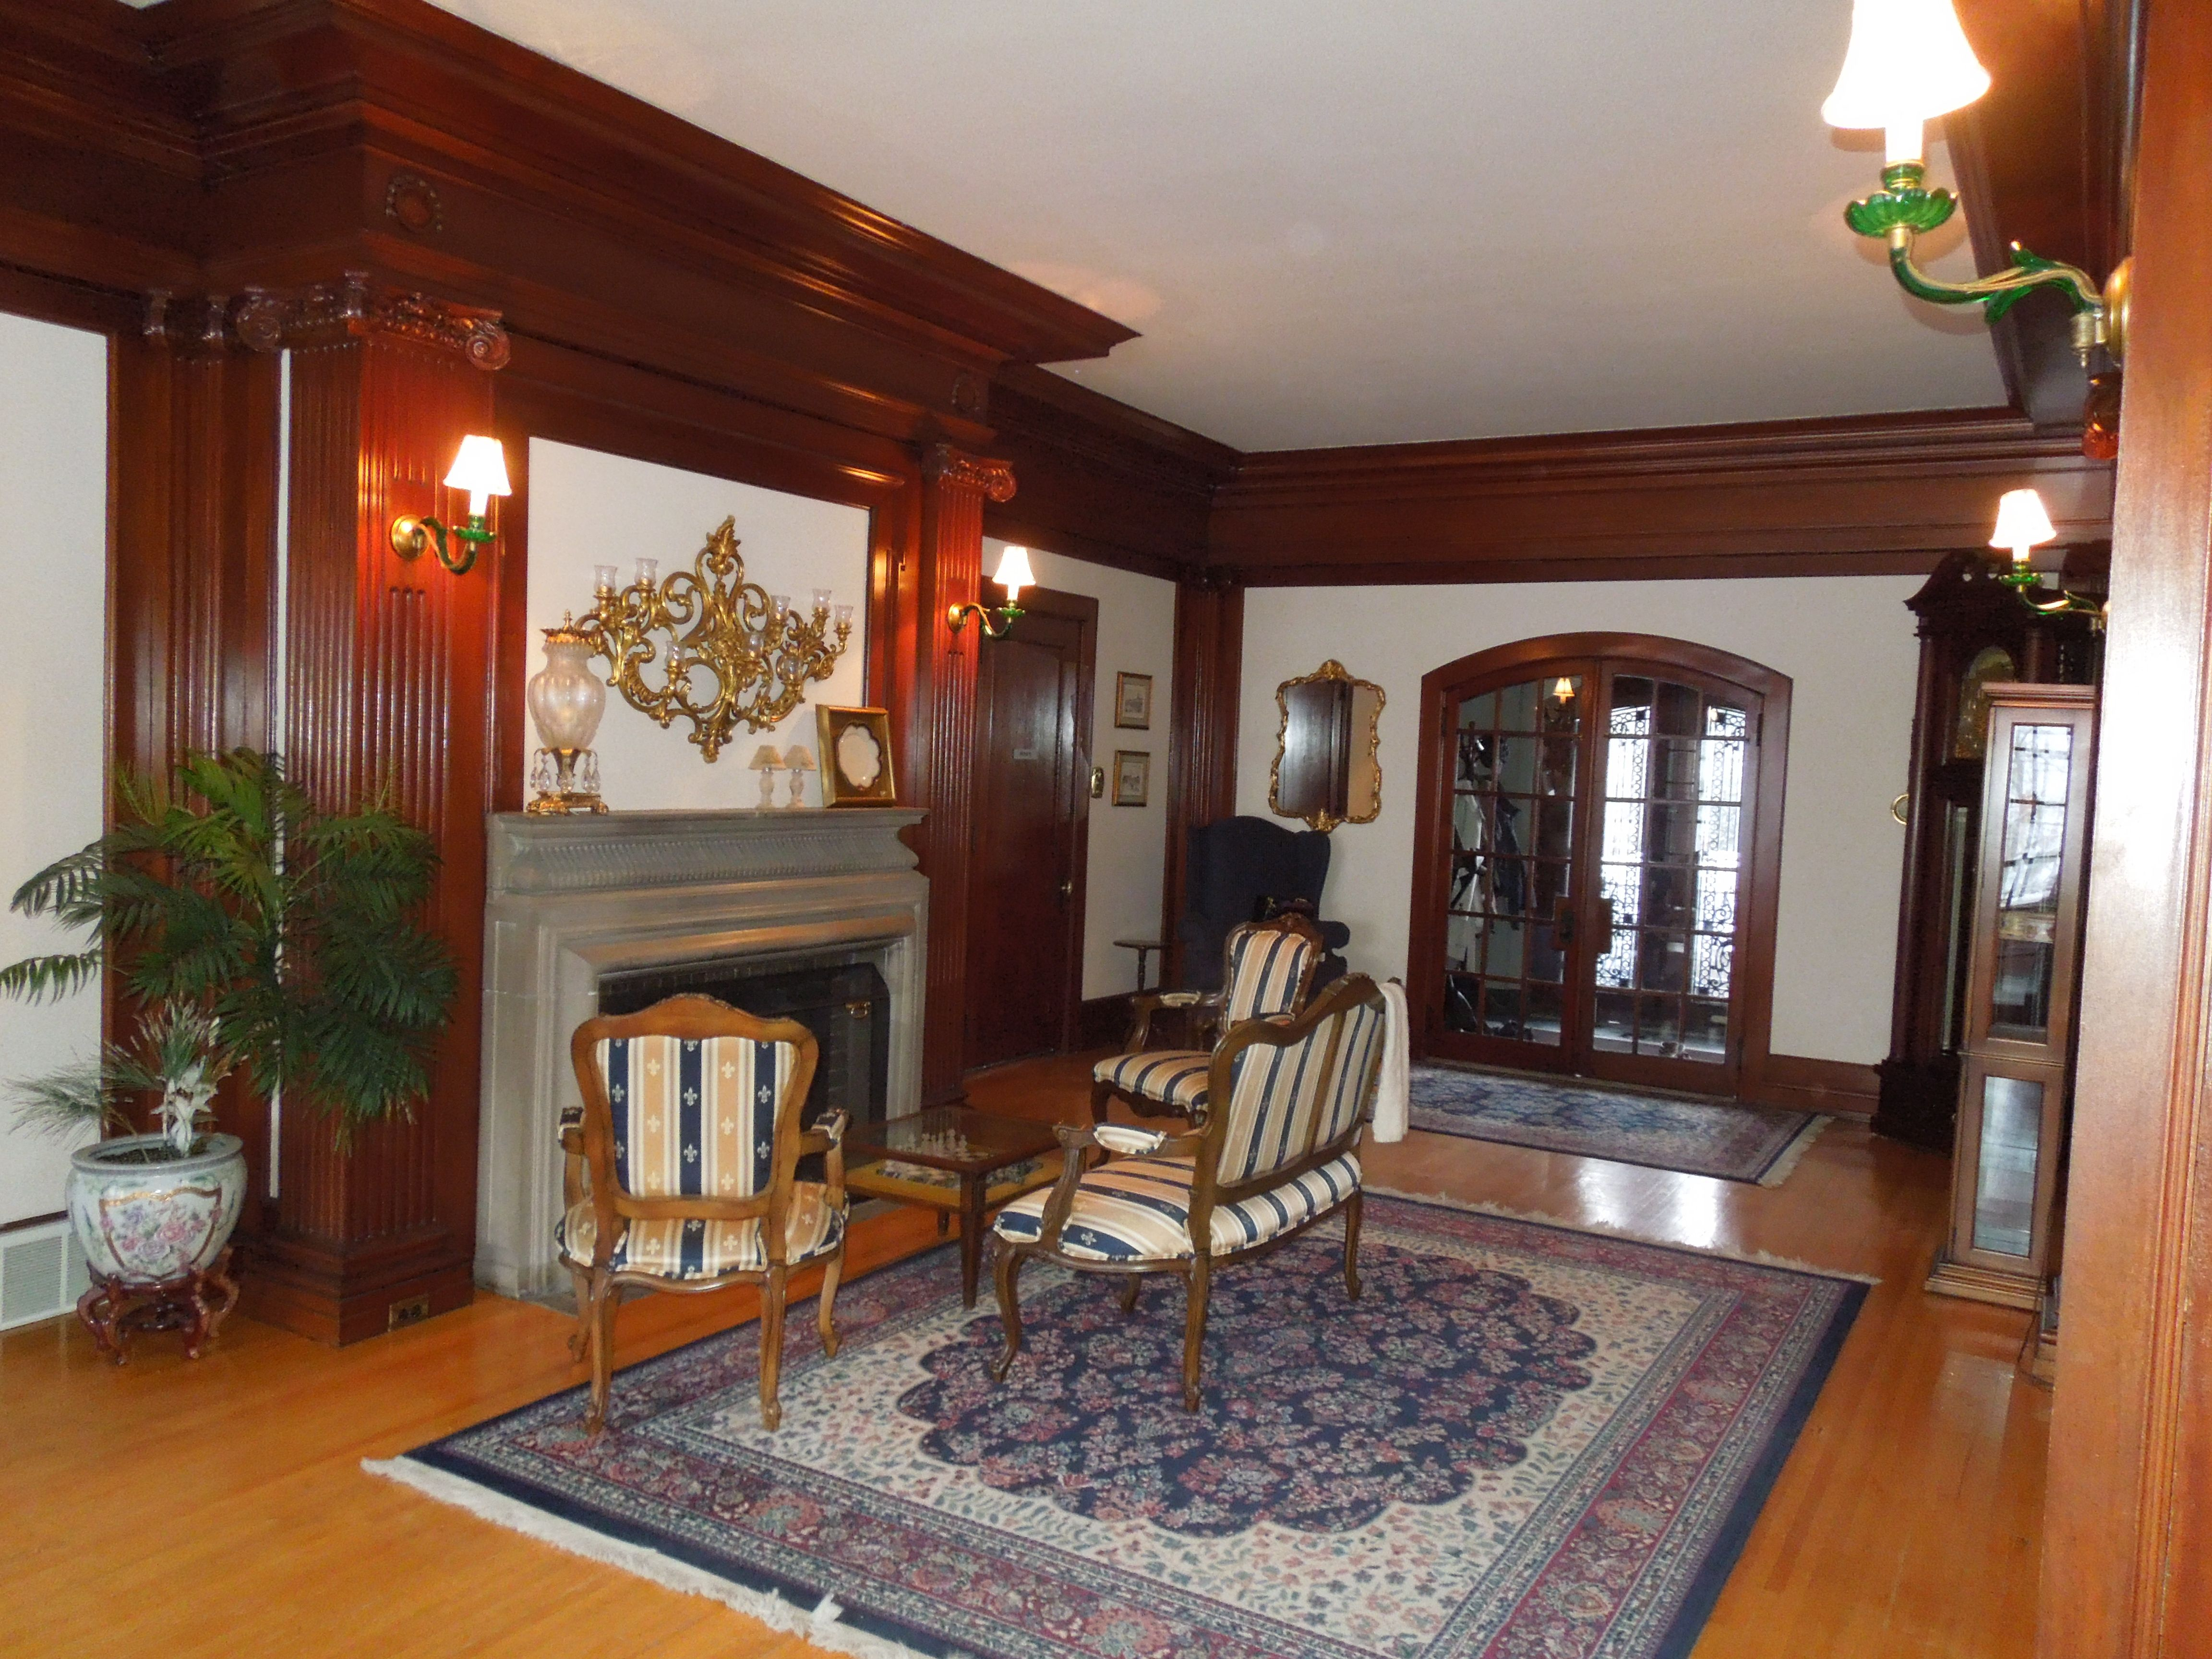 Elegant living room with fireplace at castino la